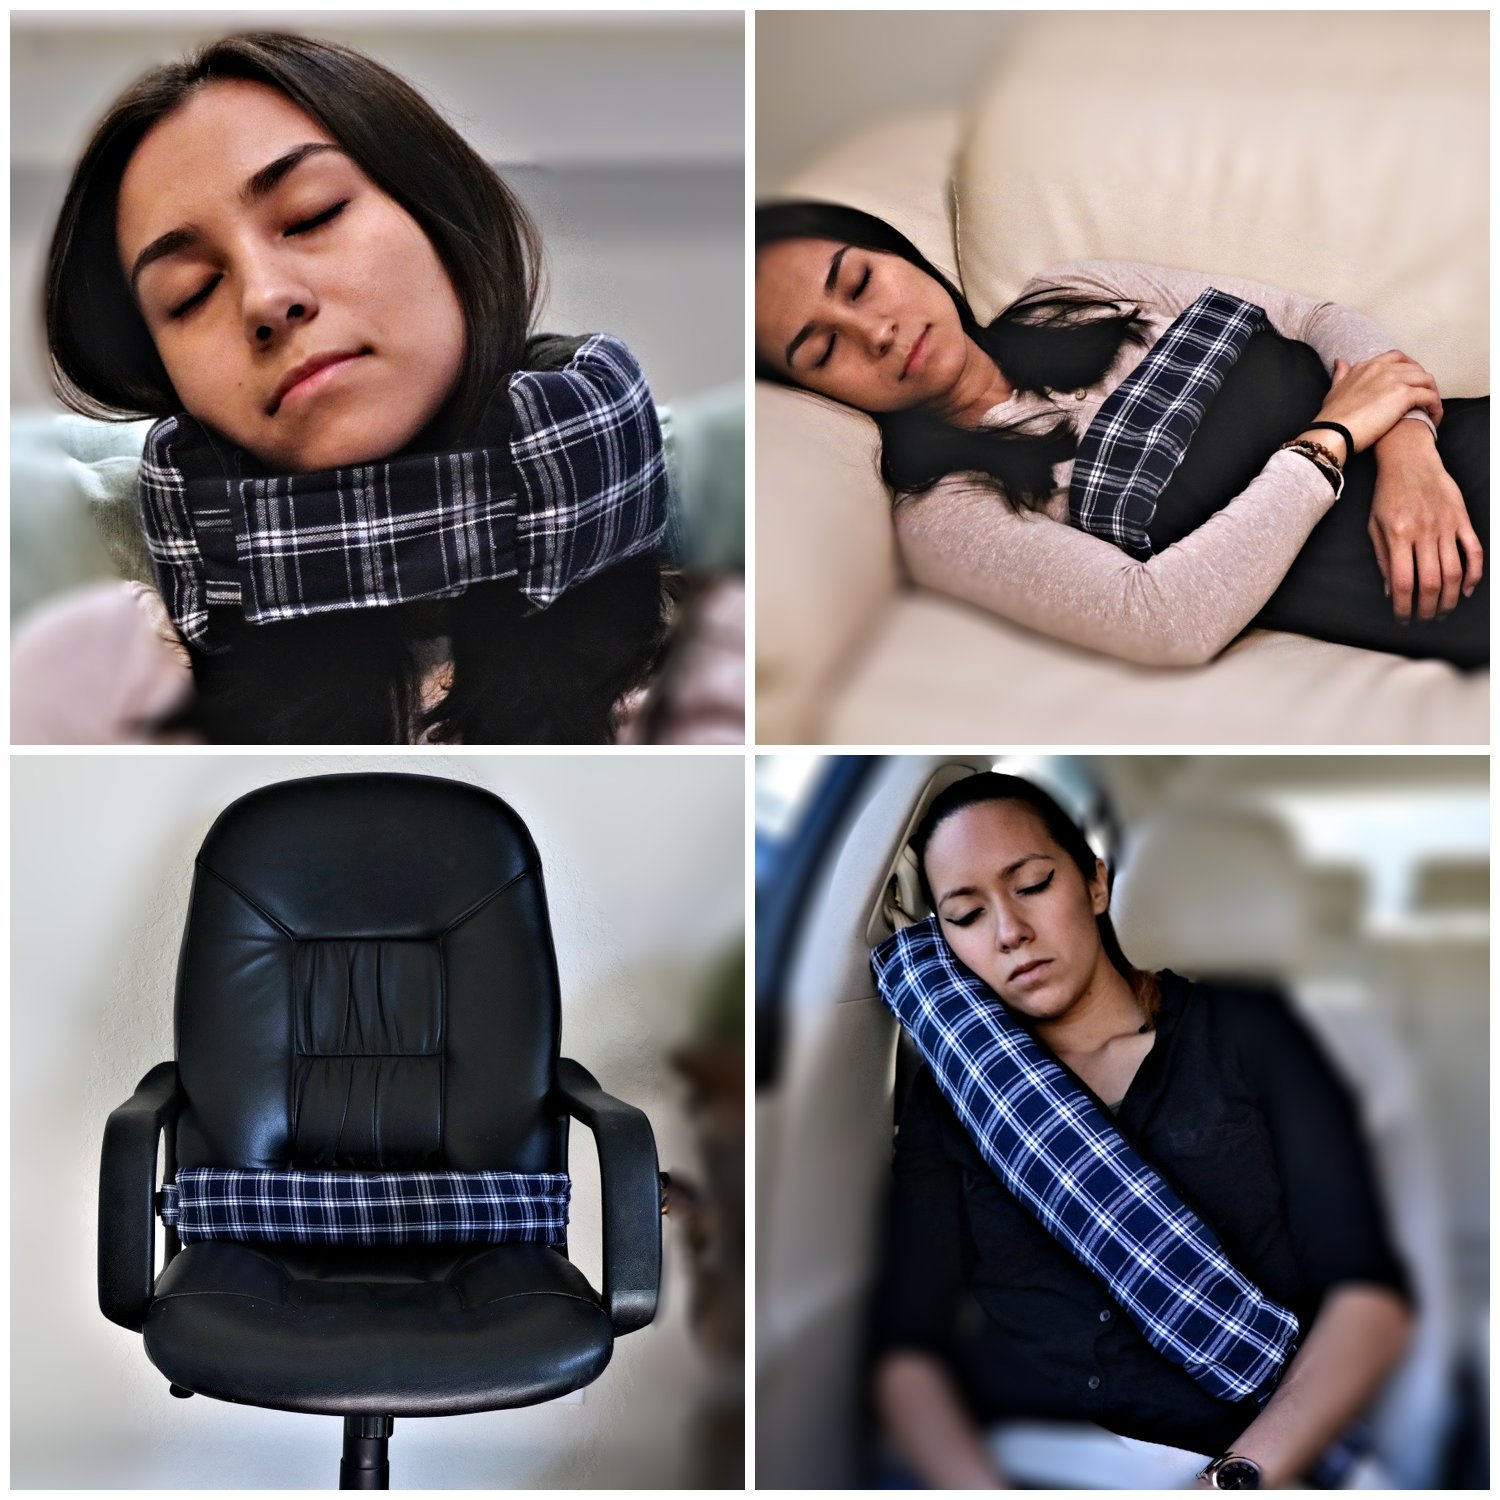 Awe Inspiring Cheap Chair Neck Support Find Chair Neck Support Deals On Creativecarmelina Interior Chair Design Creativecarmelinacom